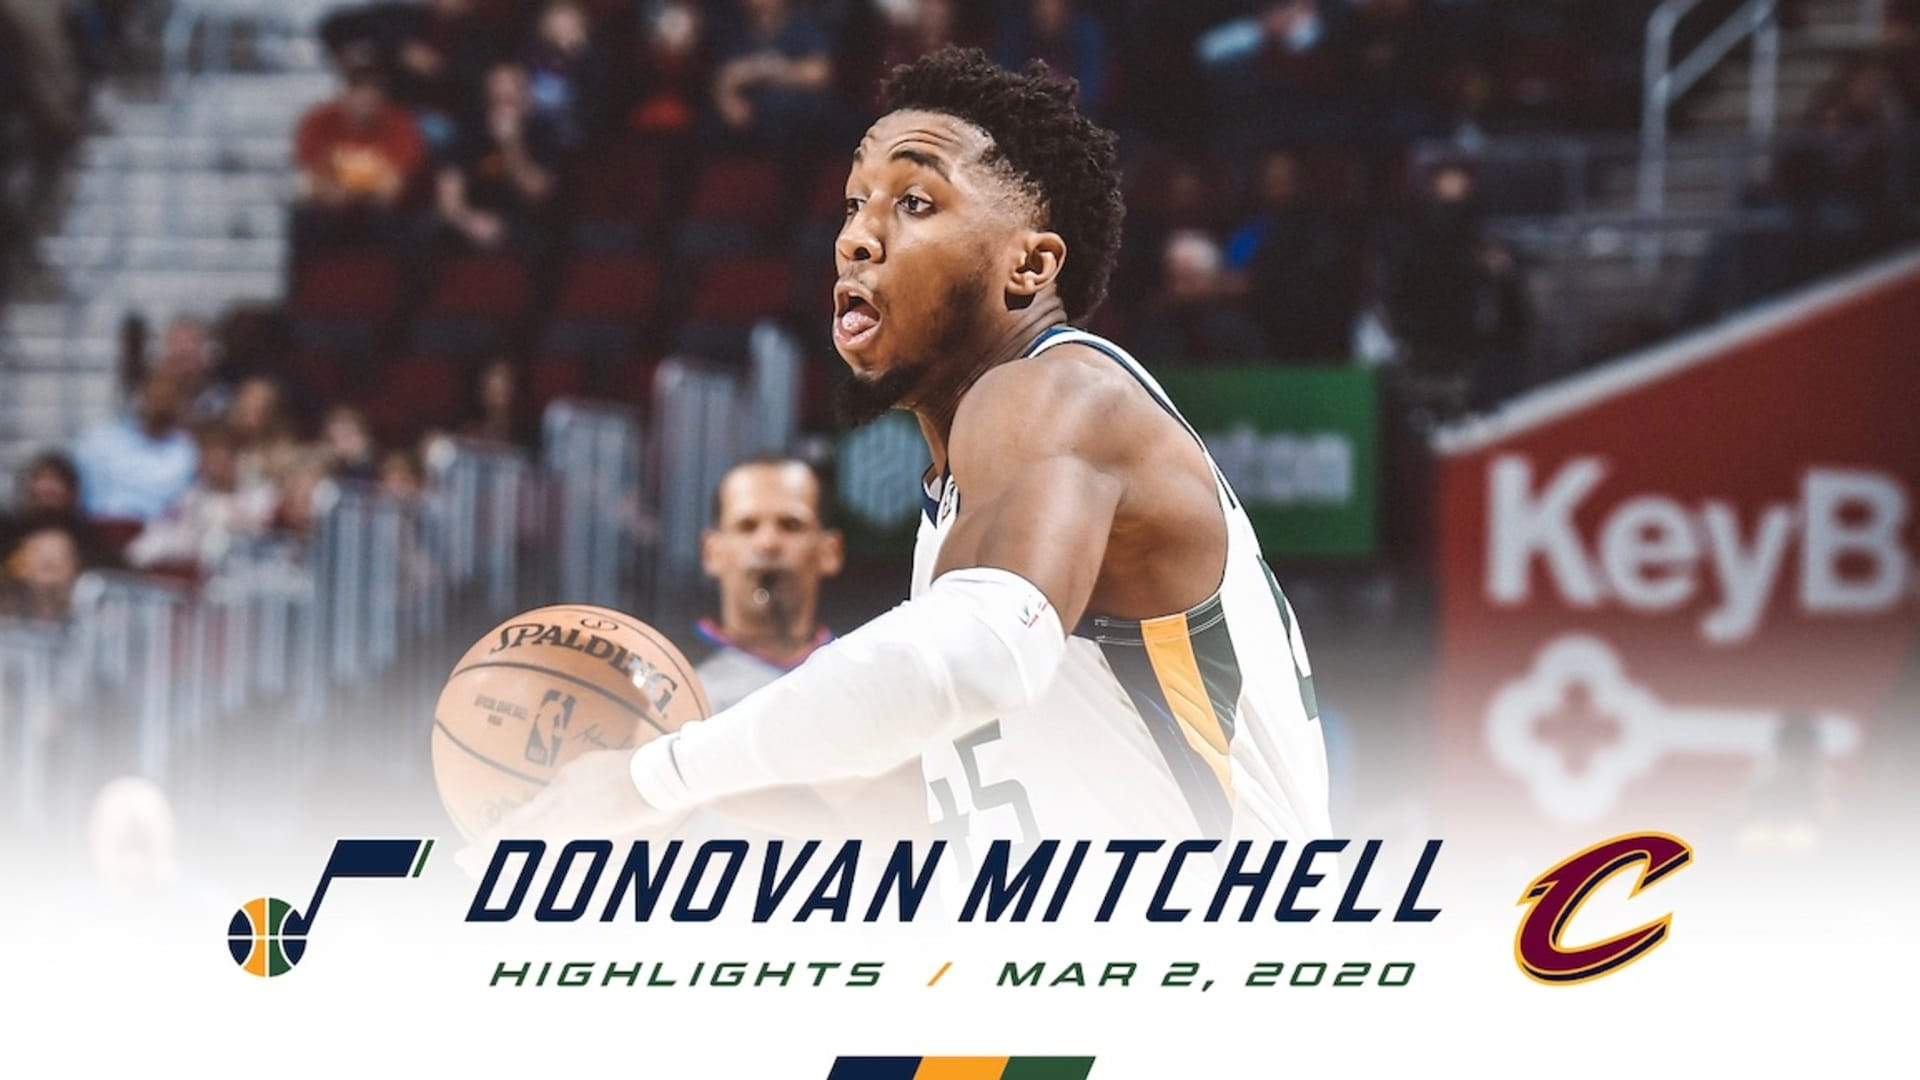 Highlights: Donovan Mitchell — 19 points, 9 rebounds